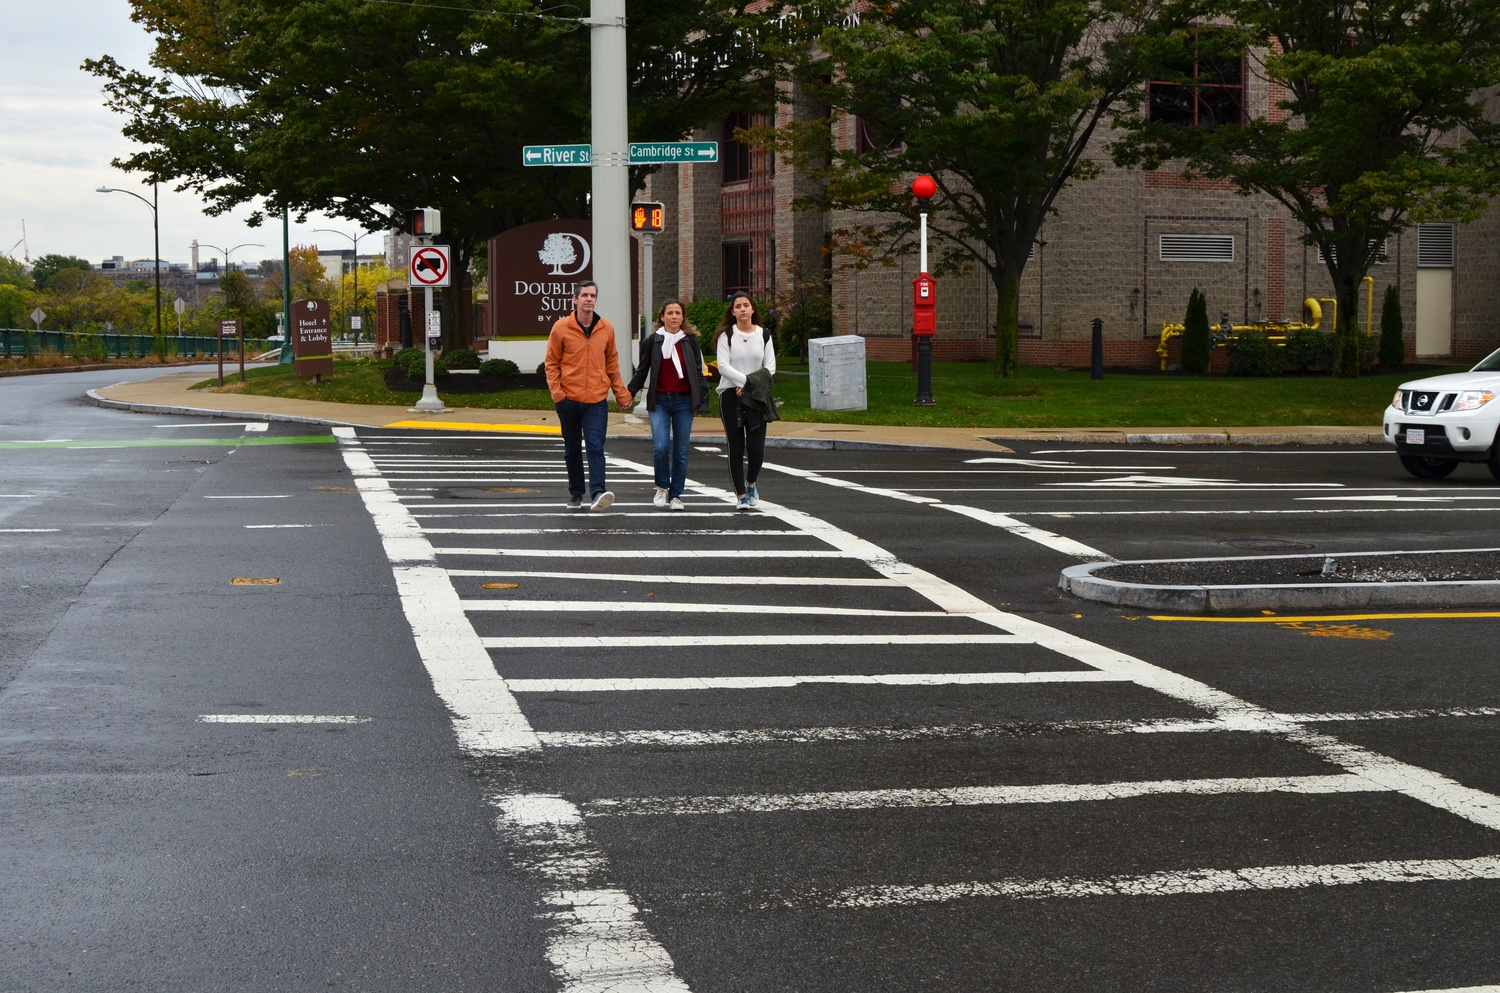 Pedestrians cross Soldiers' Field Road across the Charles River.